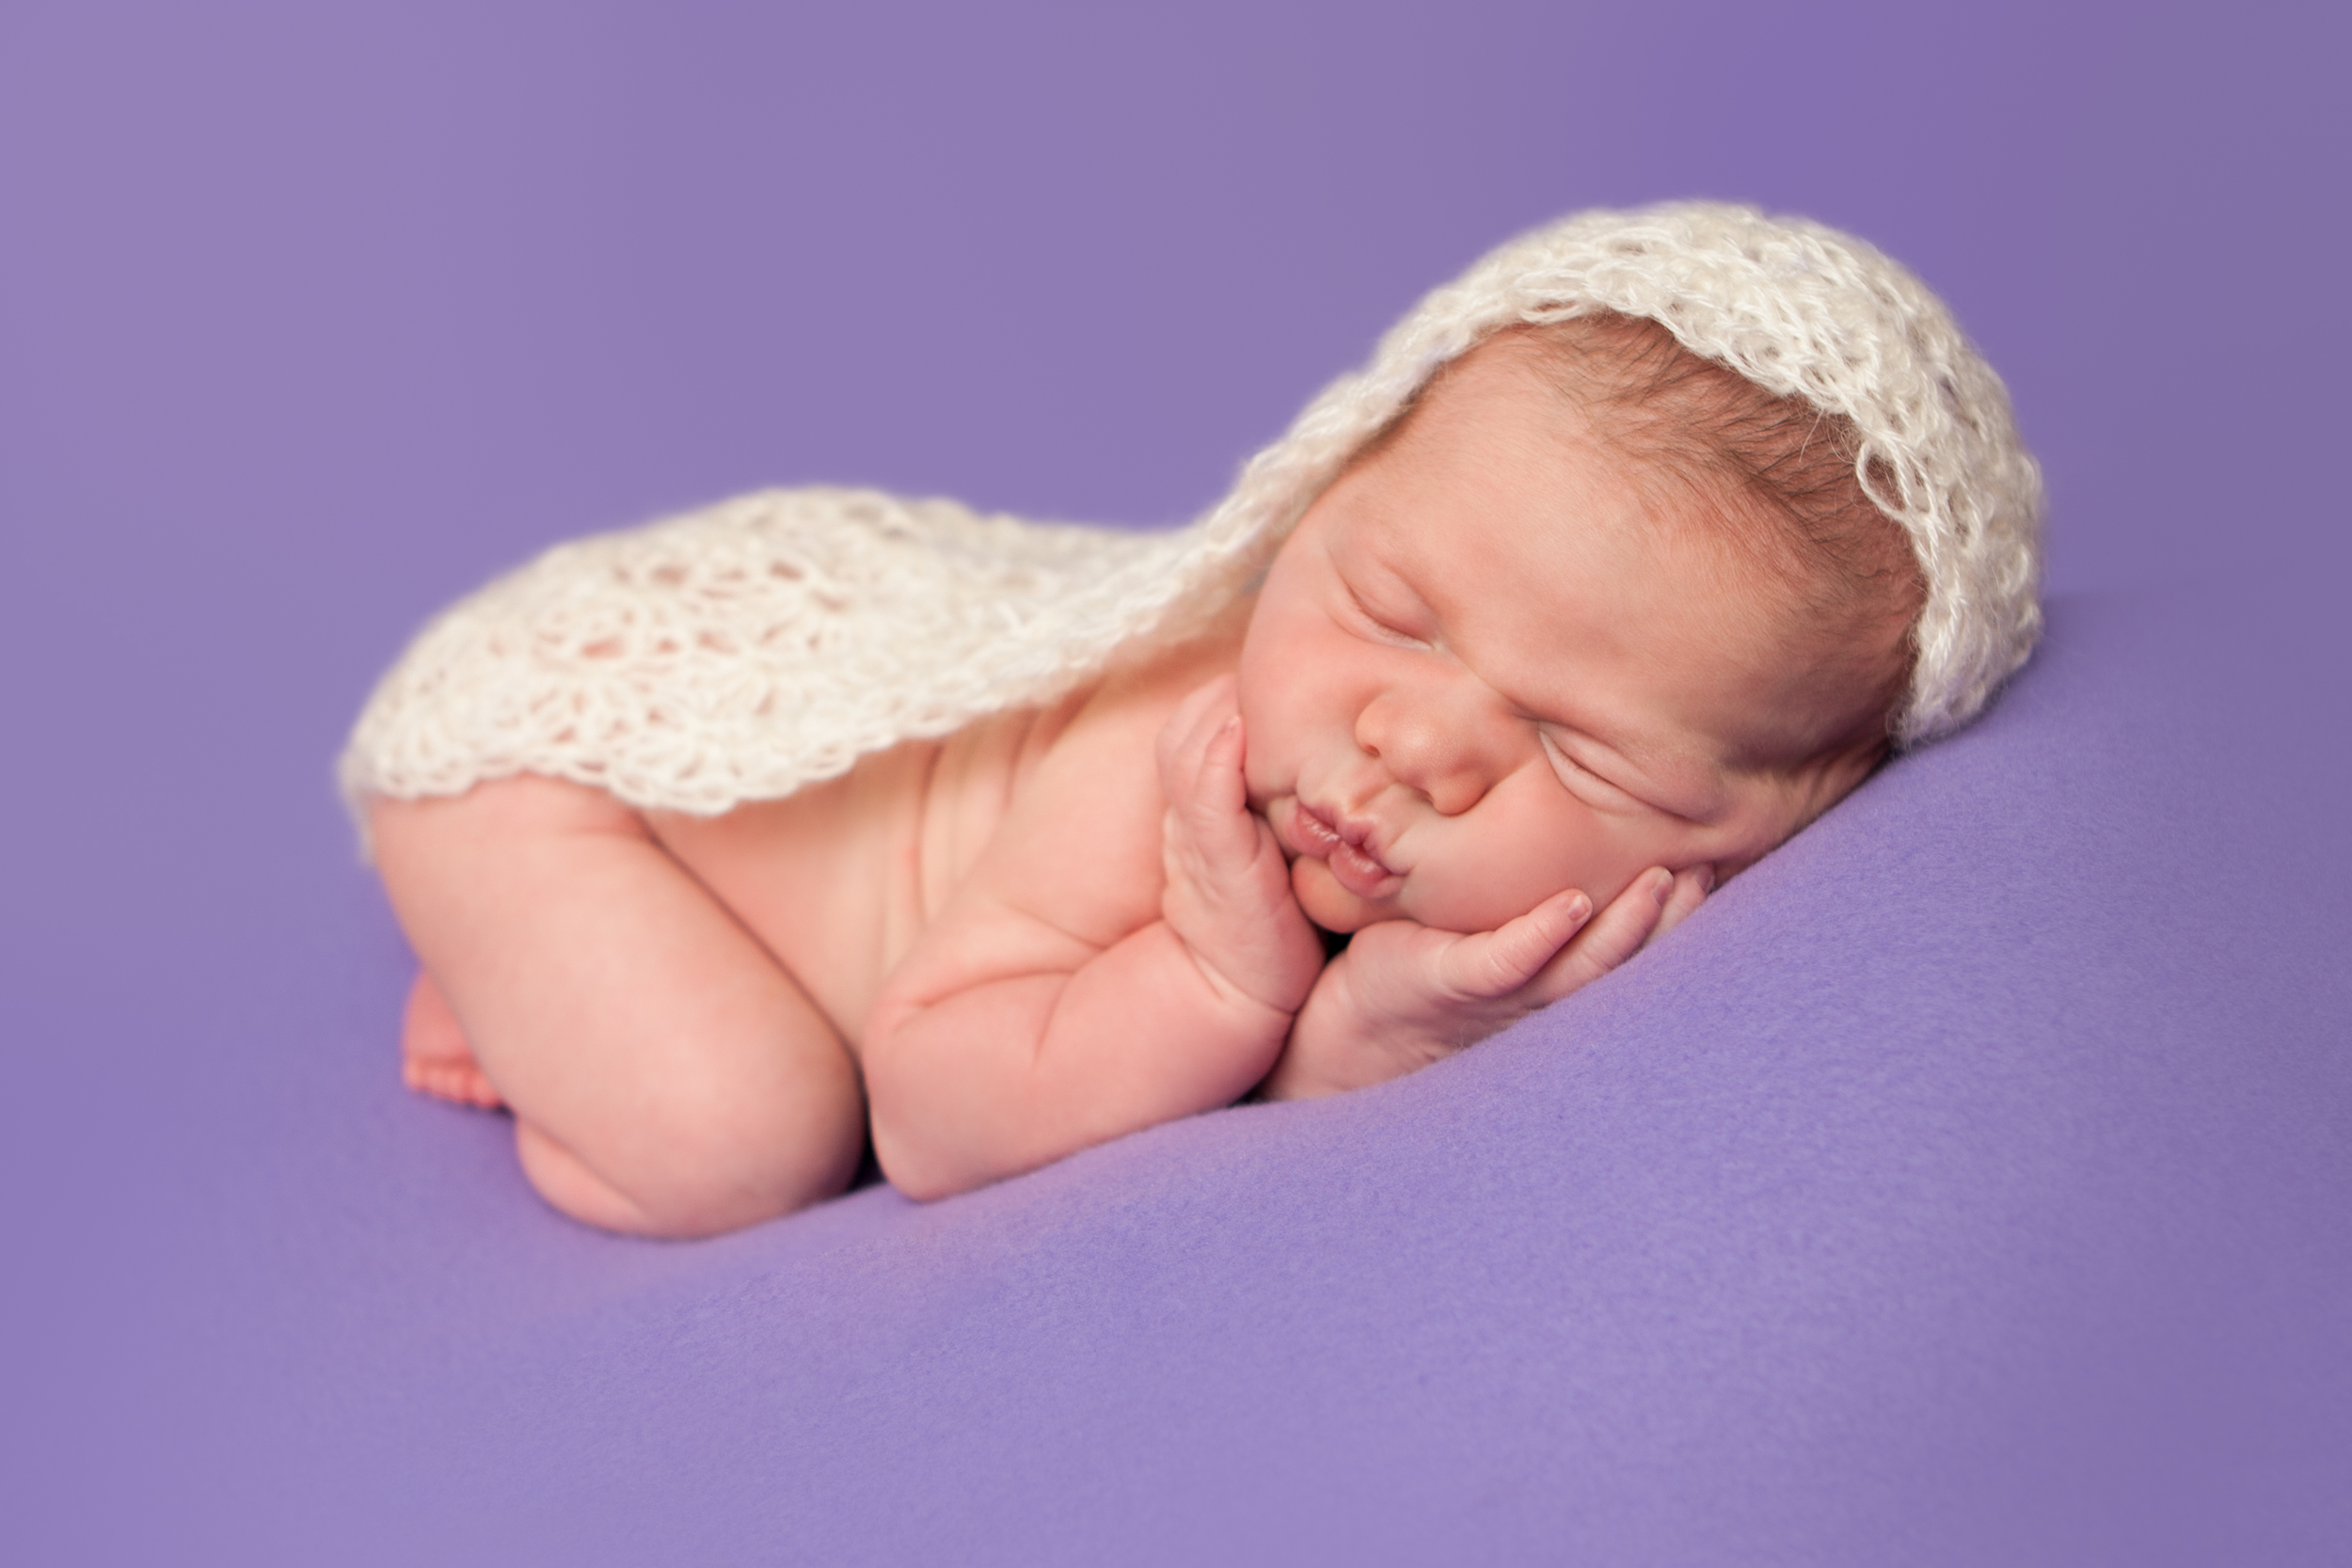 Newborn baby girl with lace crochet wrap, hands on cheeks   bean bag pose on purple fabric backdrop, Westchester County, New York Newborn Photographer, Amanda Noelle Photography.